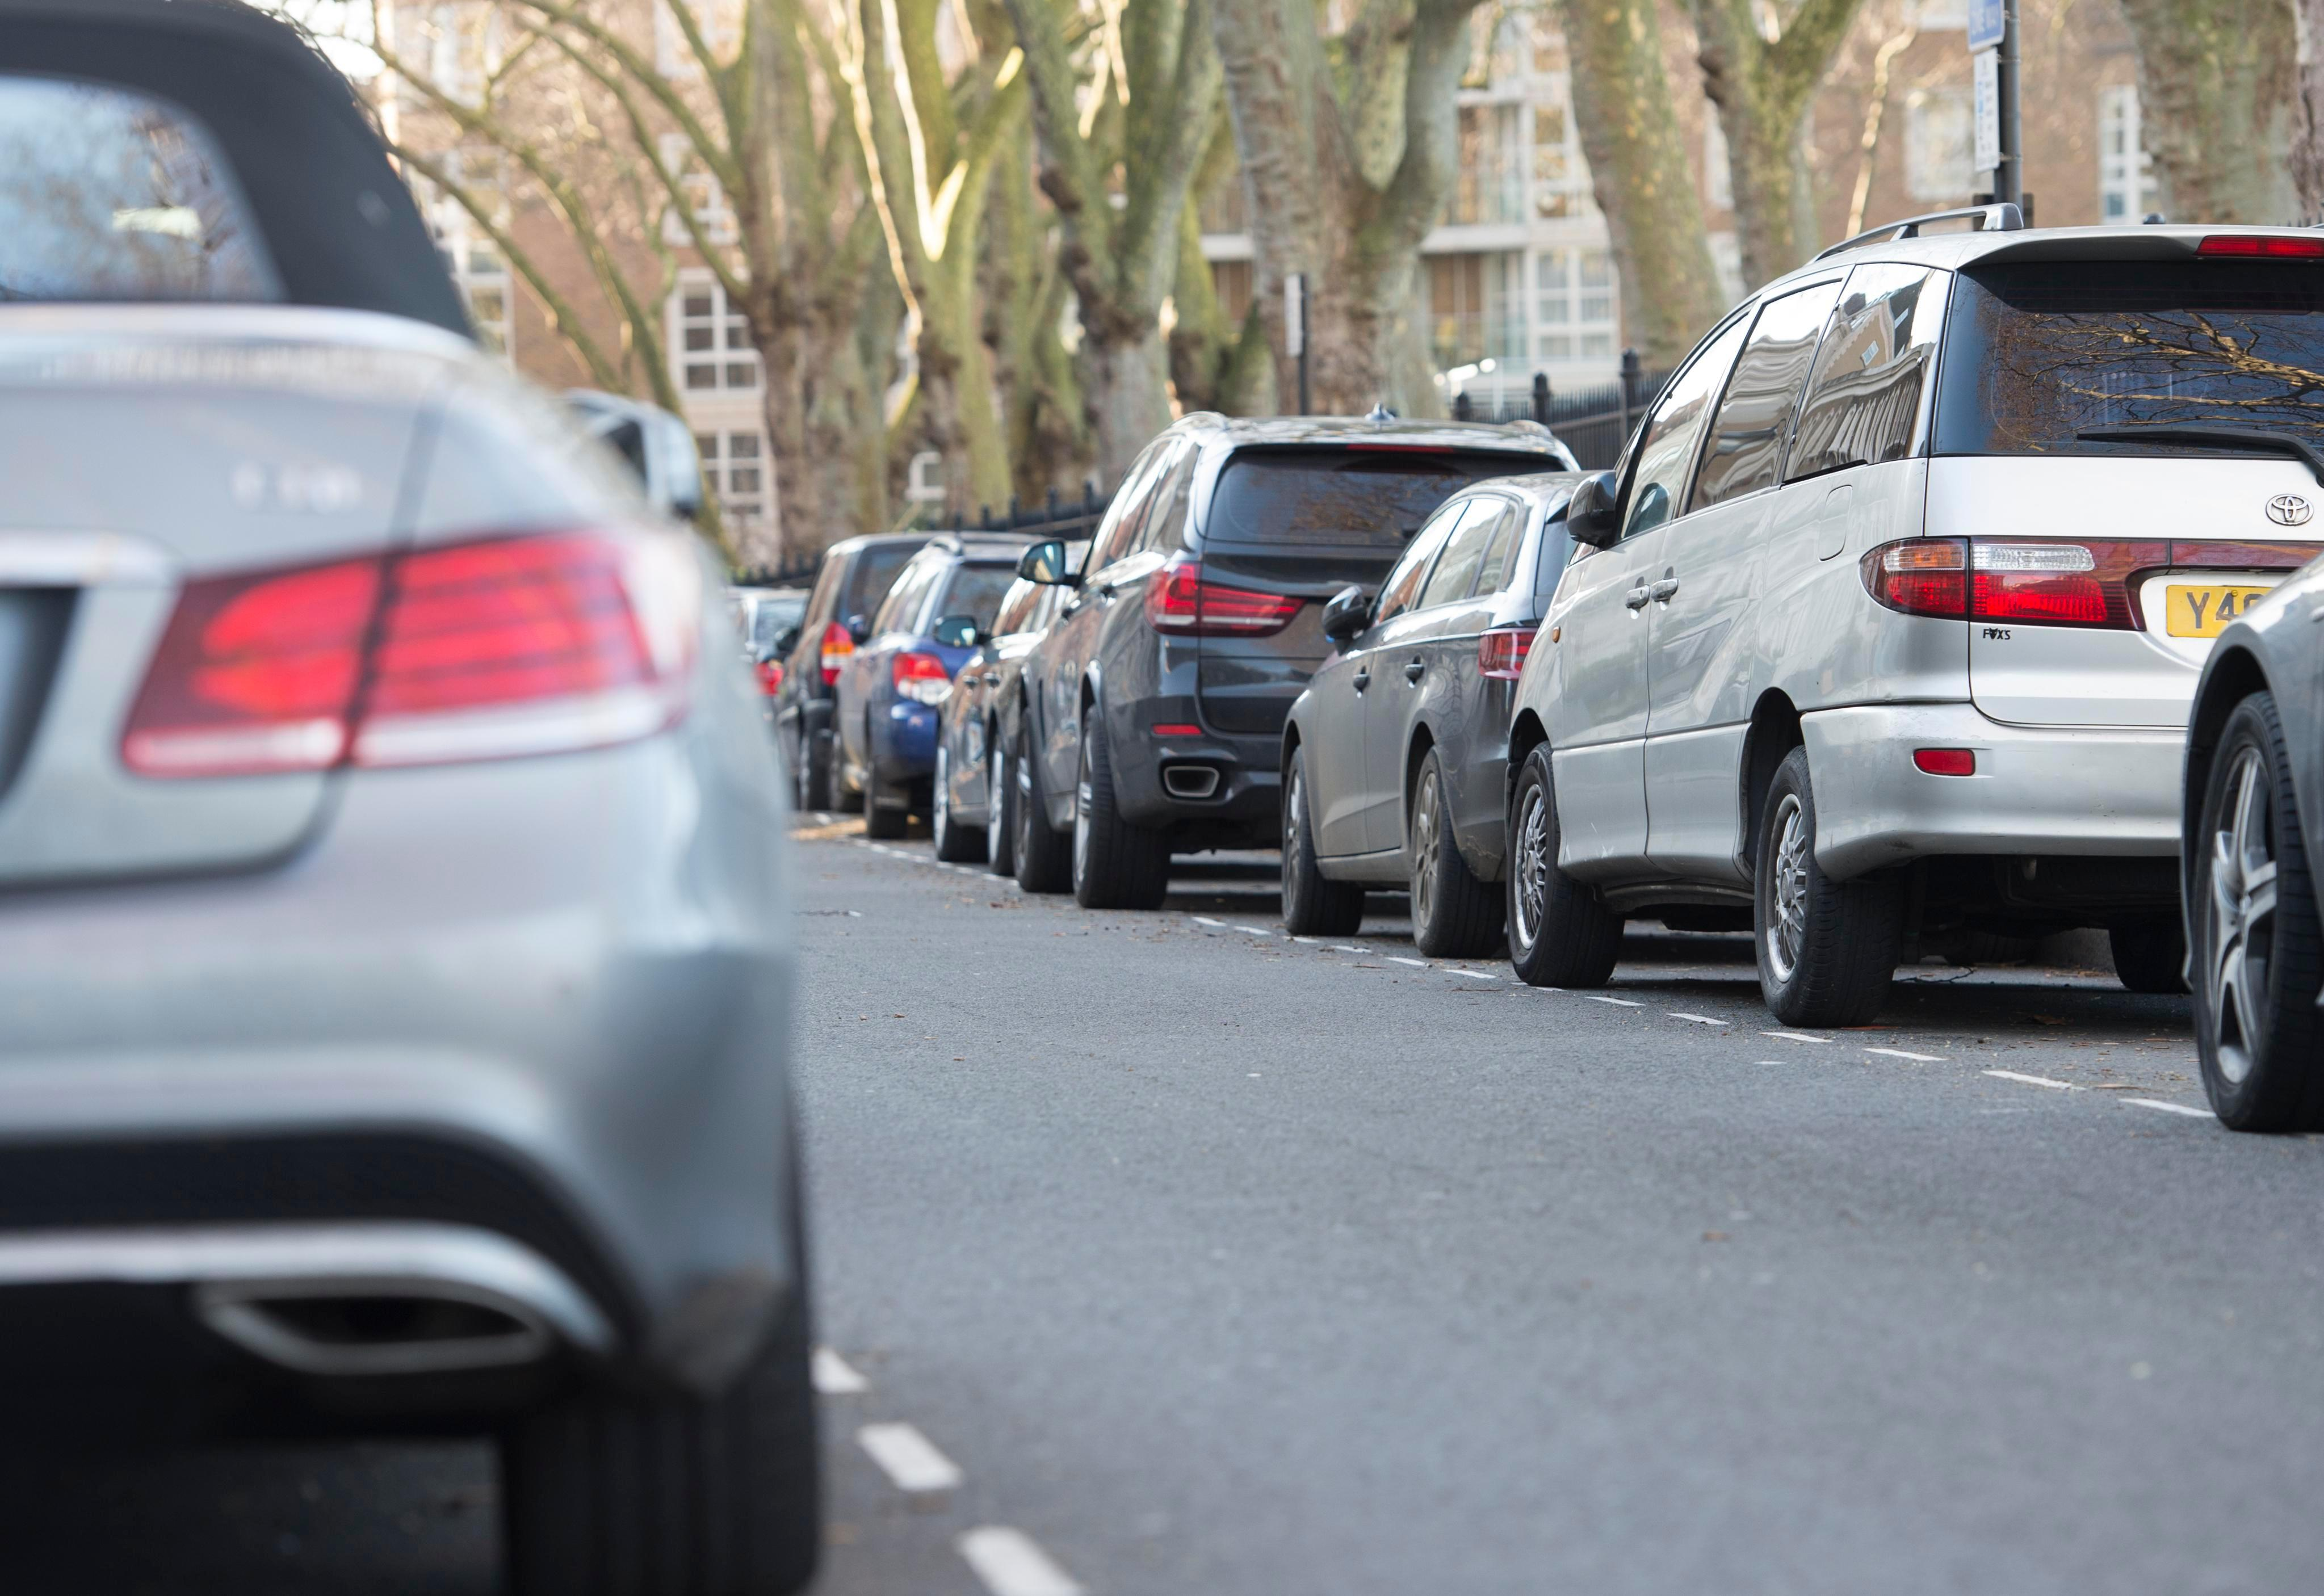 Drivers who park uninsured cars on the street could get fined £2,500